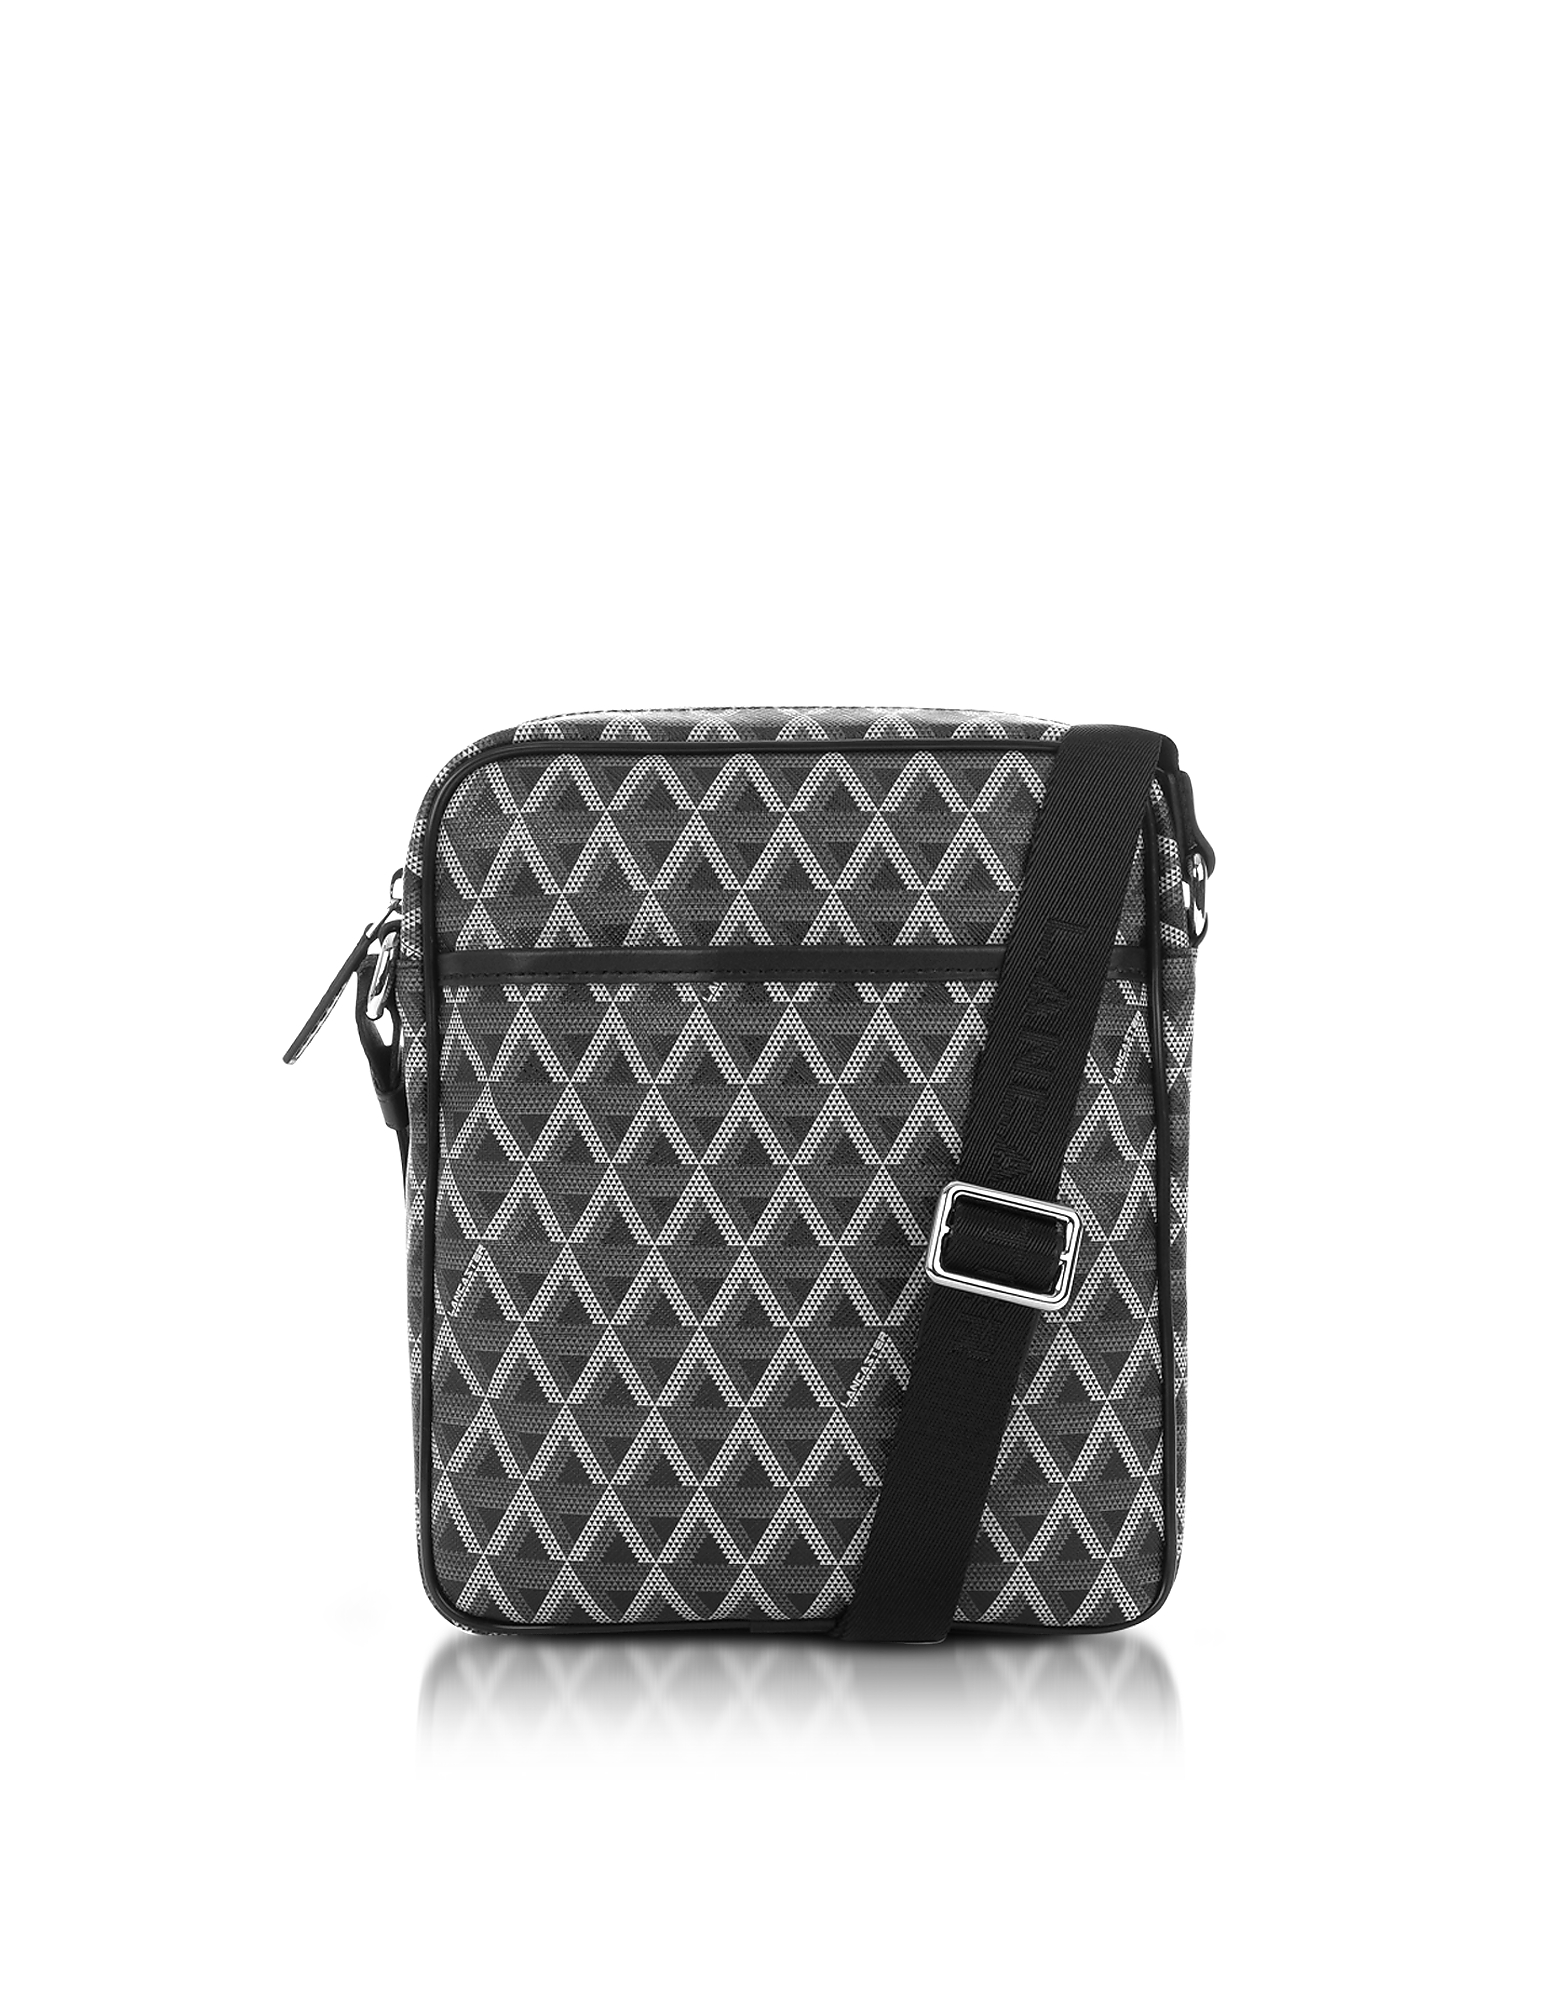 Lancaster Paris Men's Bags, Ikon Black Coated Canvas Men's Crossbody Bag